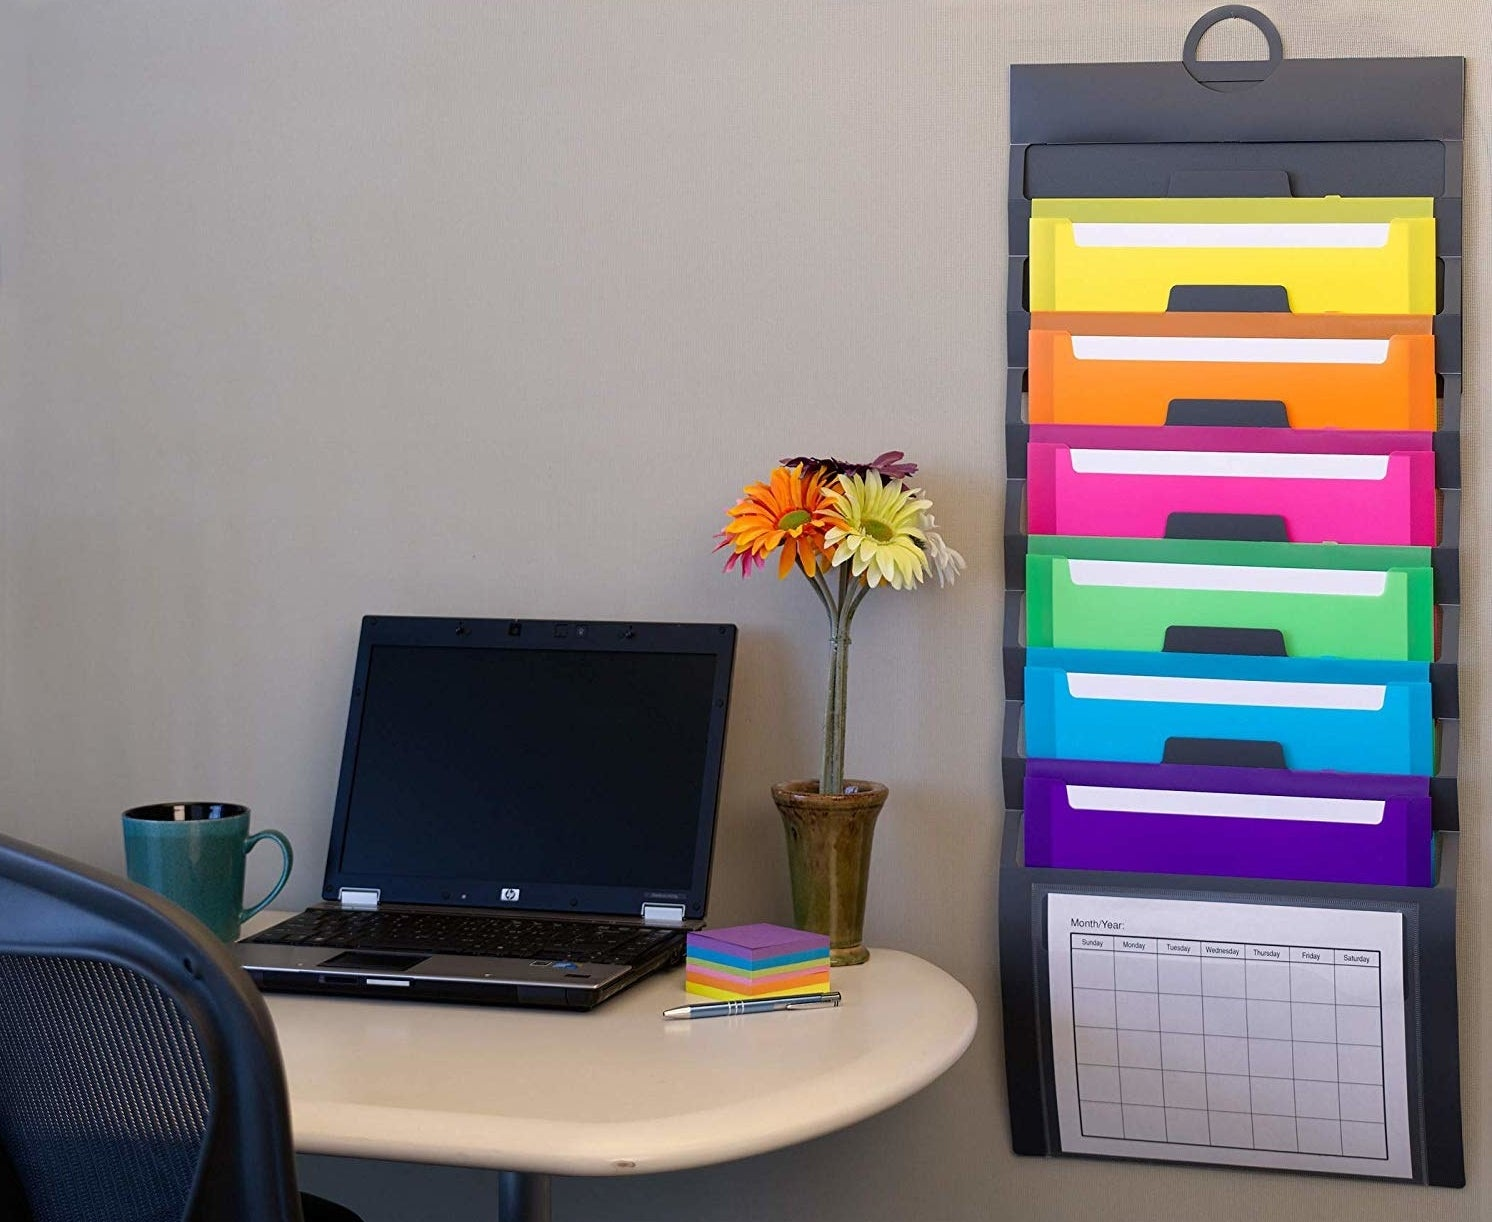 A vertical file folder hanging from the wall next to a table with a laptop